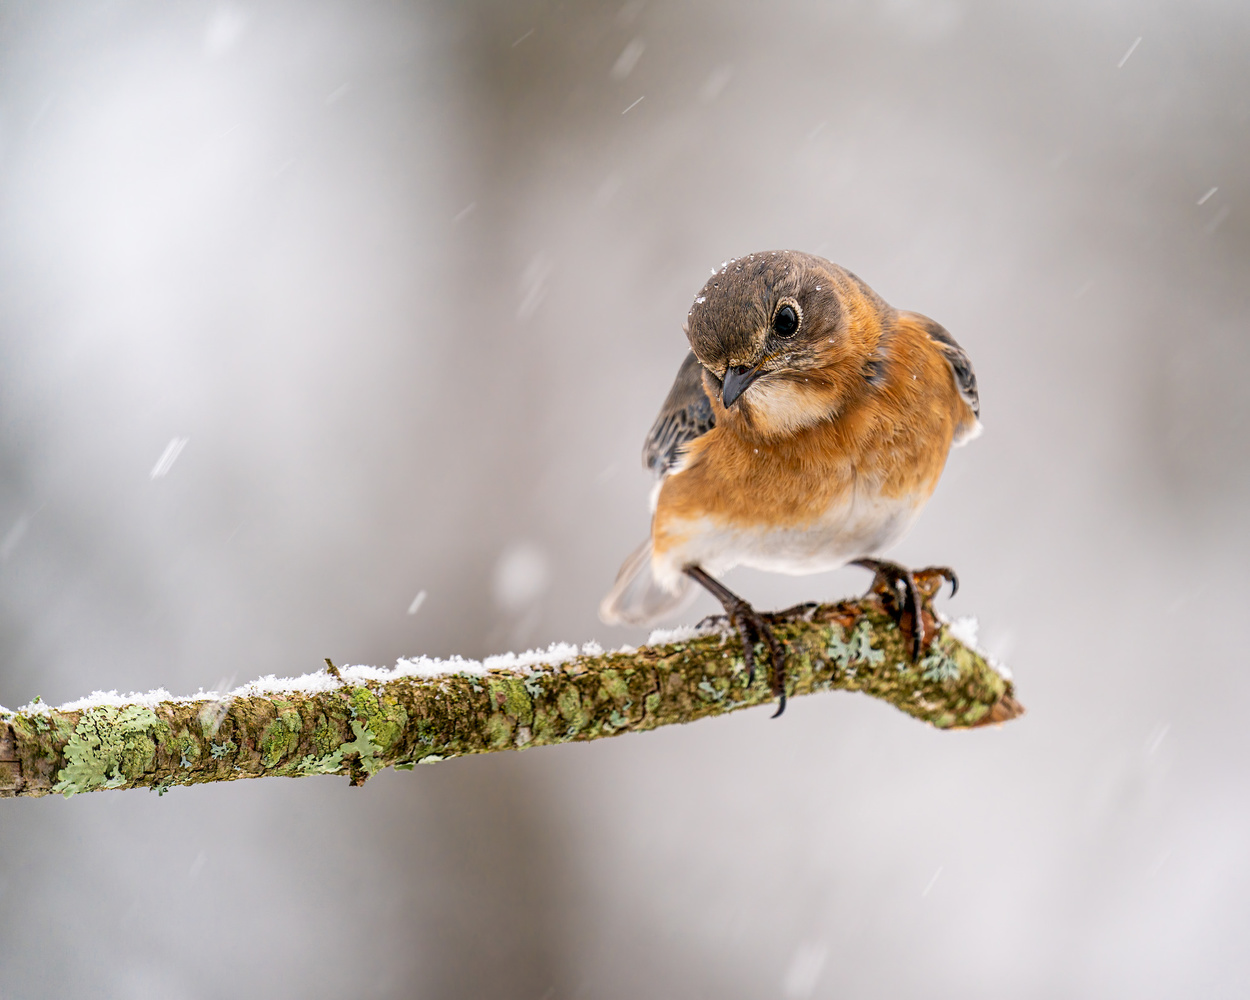 Female bluebird by Skyler Ewing